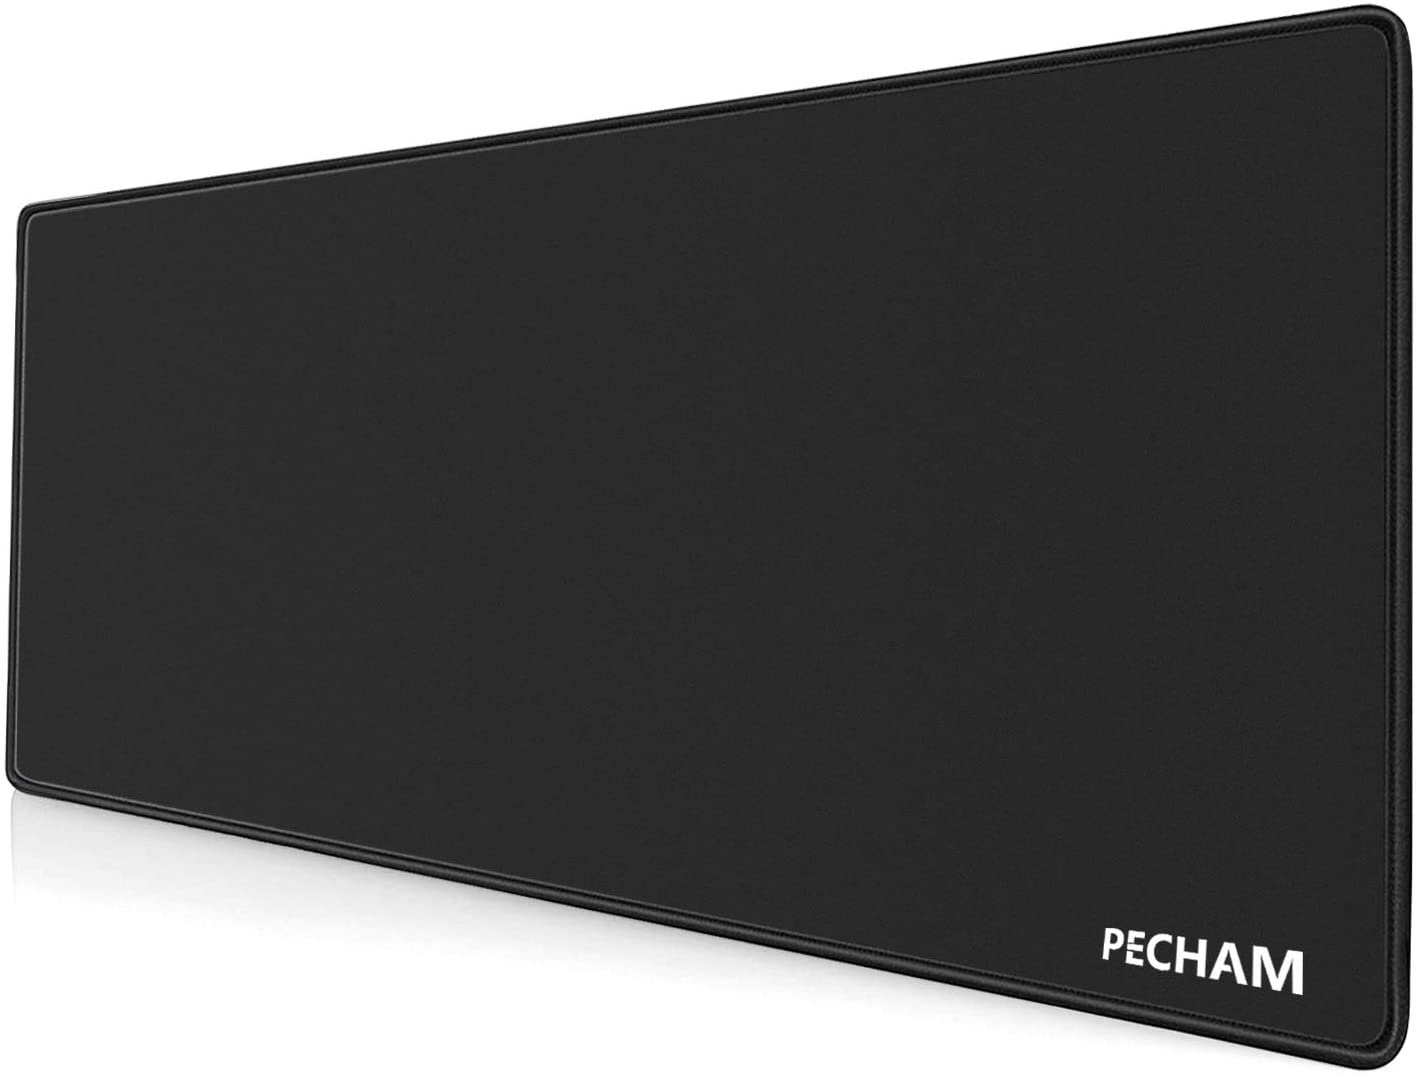 PECHAM 3mm Extended High Precise Large Gaming Mouse Pad XXXL (30.71x11.81 inch) Non-Slip Water-Resistant Computer Mouse Mat, Desk Pads